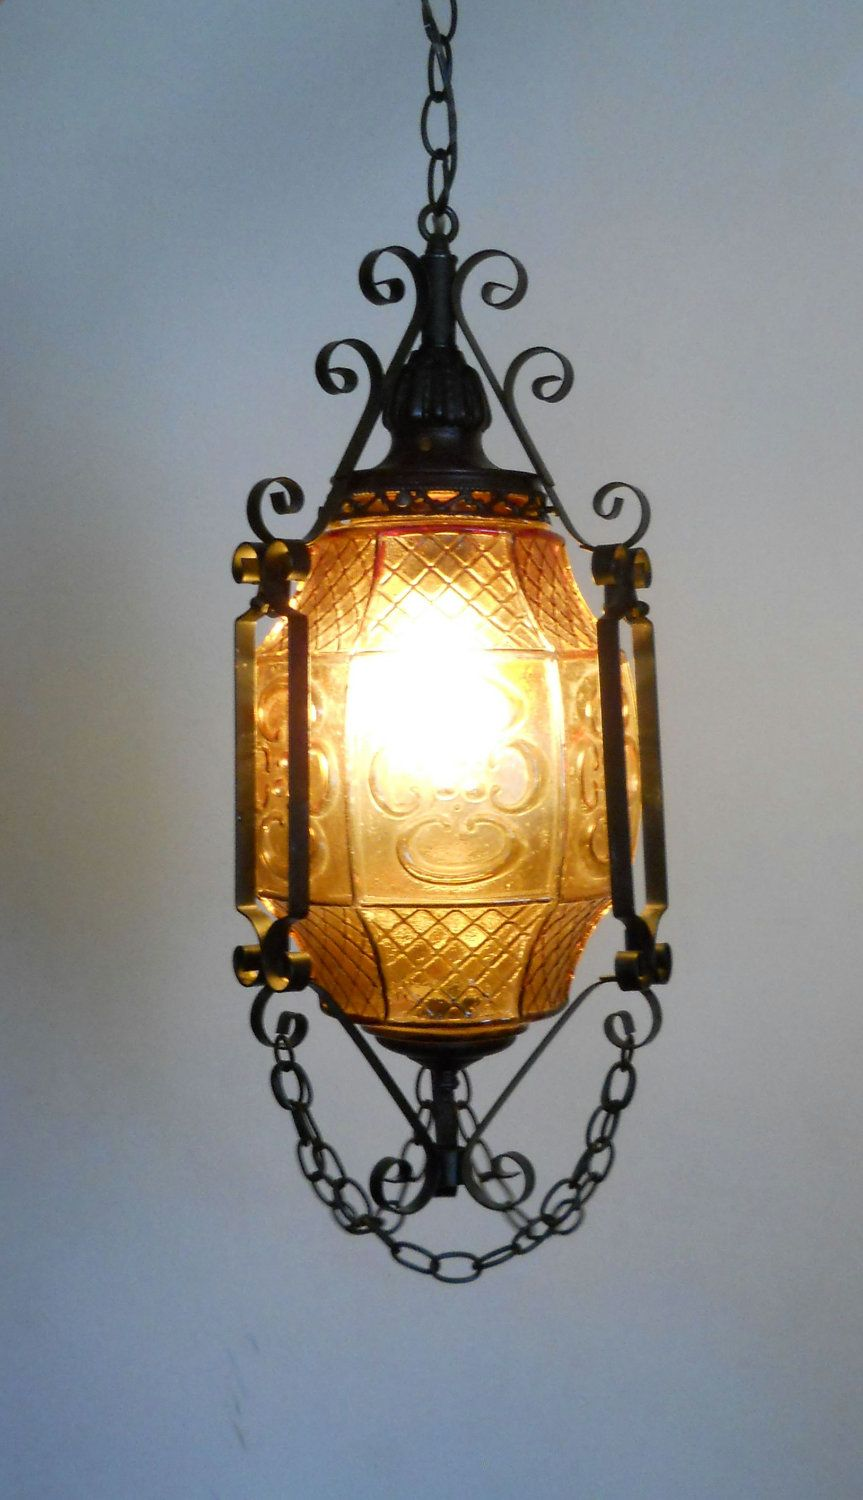 Gothic Lantern Amber Art Glass And Wrought Iron Swag Hanging Lamp Ceiling Fixture